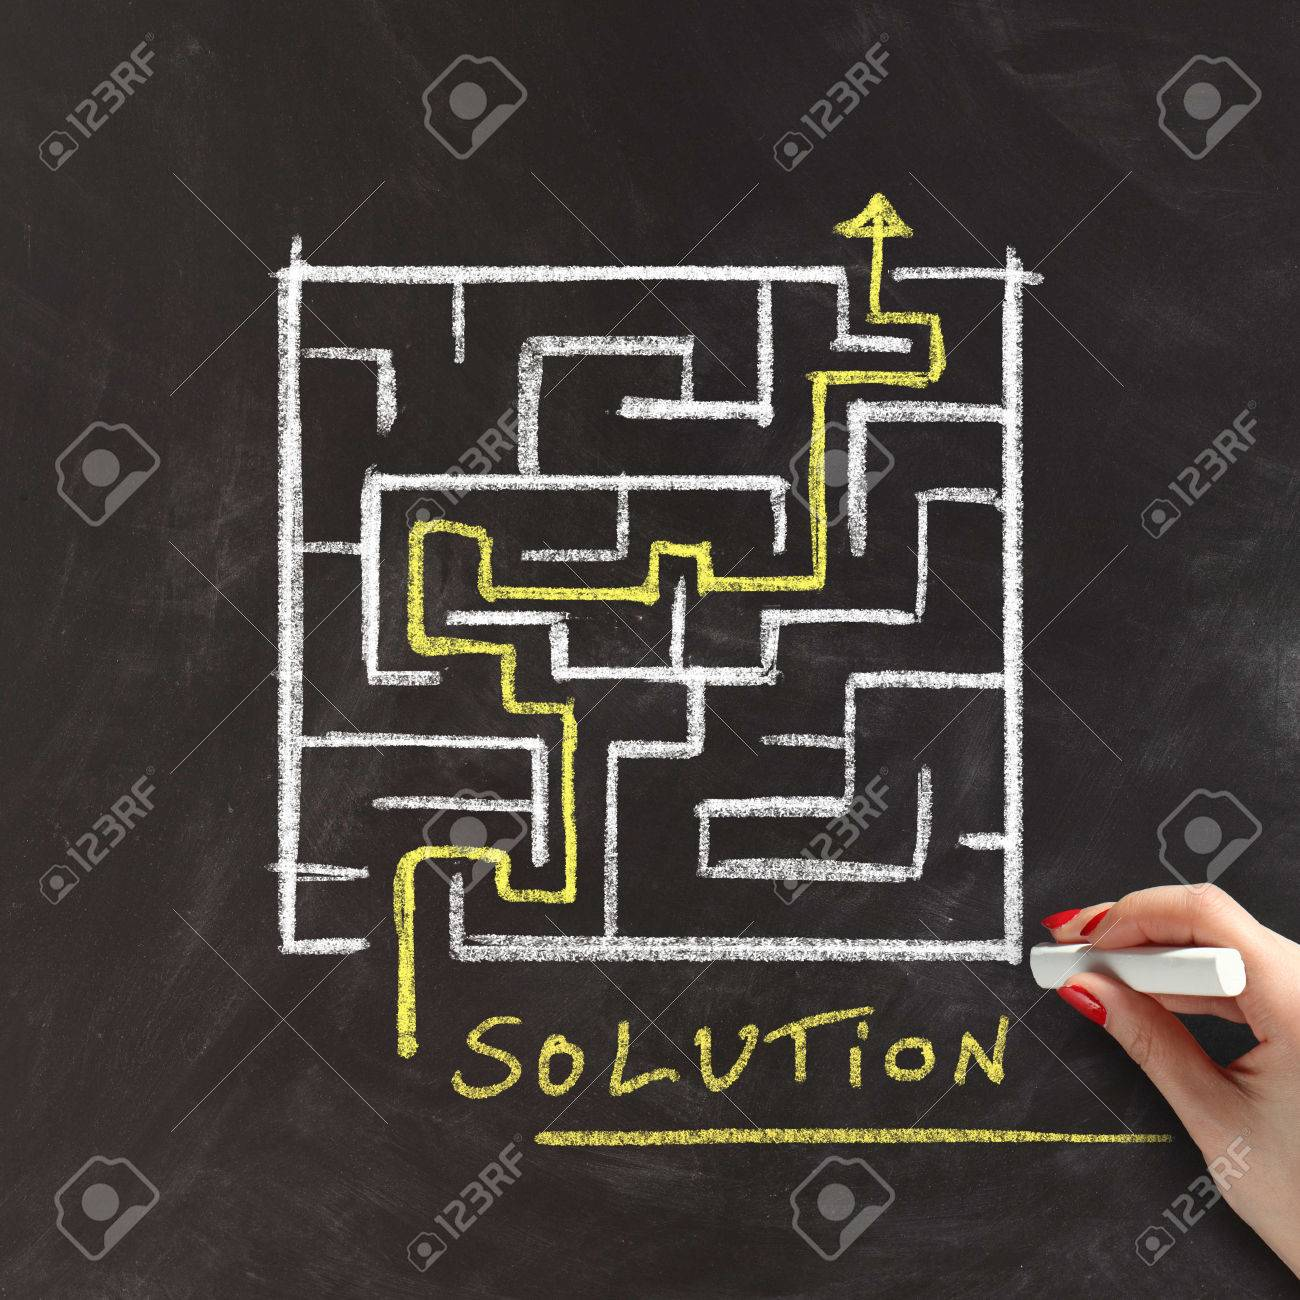 Solution or problem solving concept with a female hand drawing